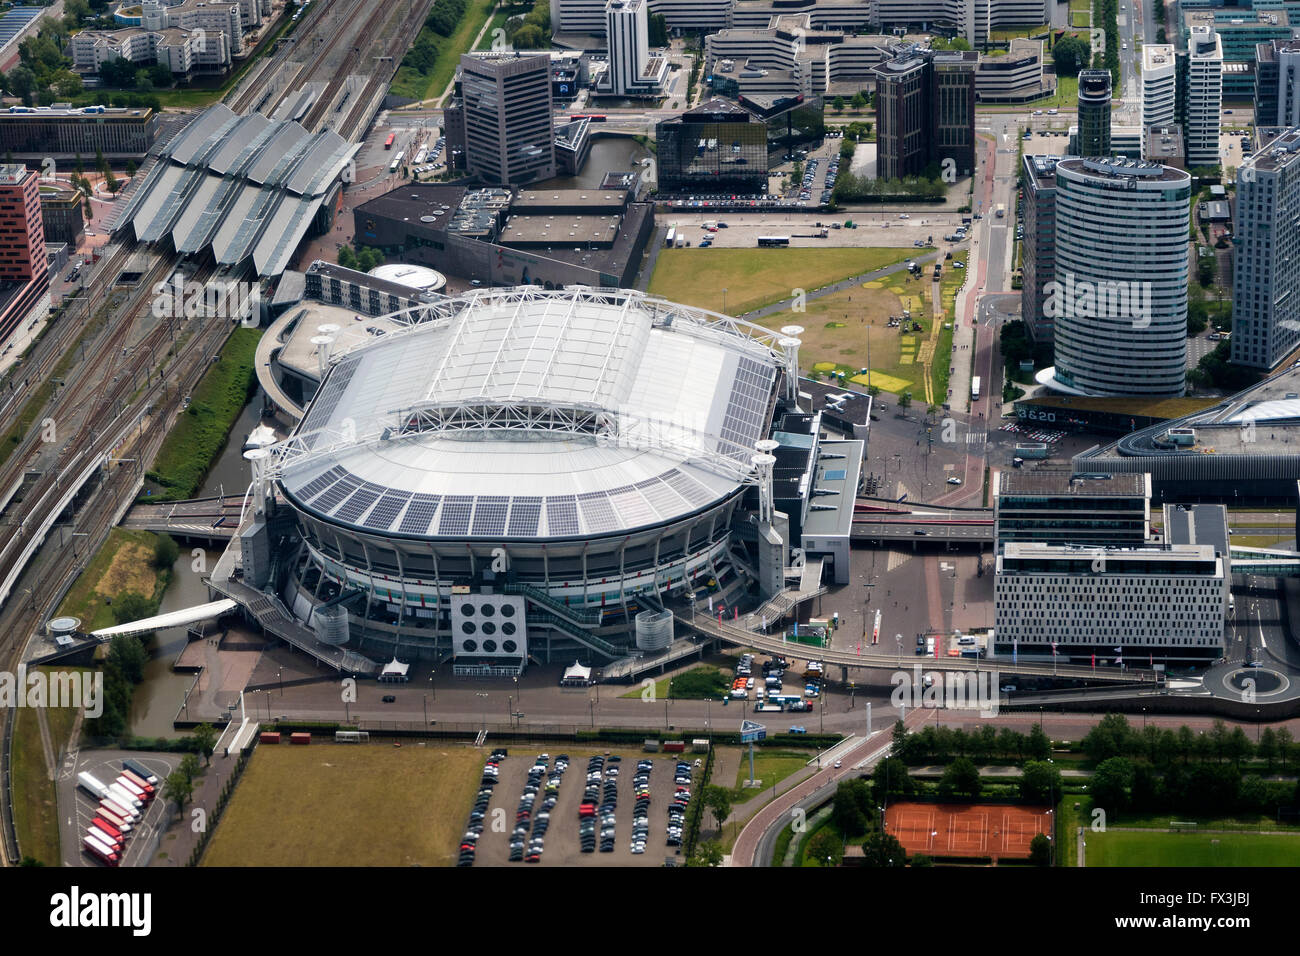 Aerial view of the Ajax football stadium in Amsterdam, Netherlands - Stock Image